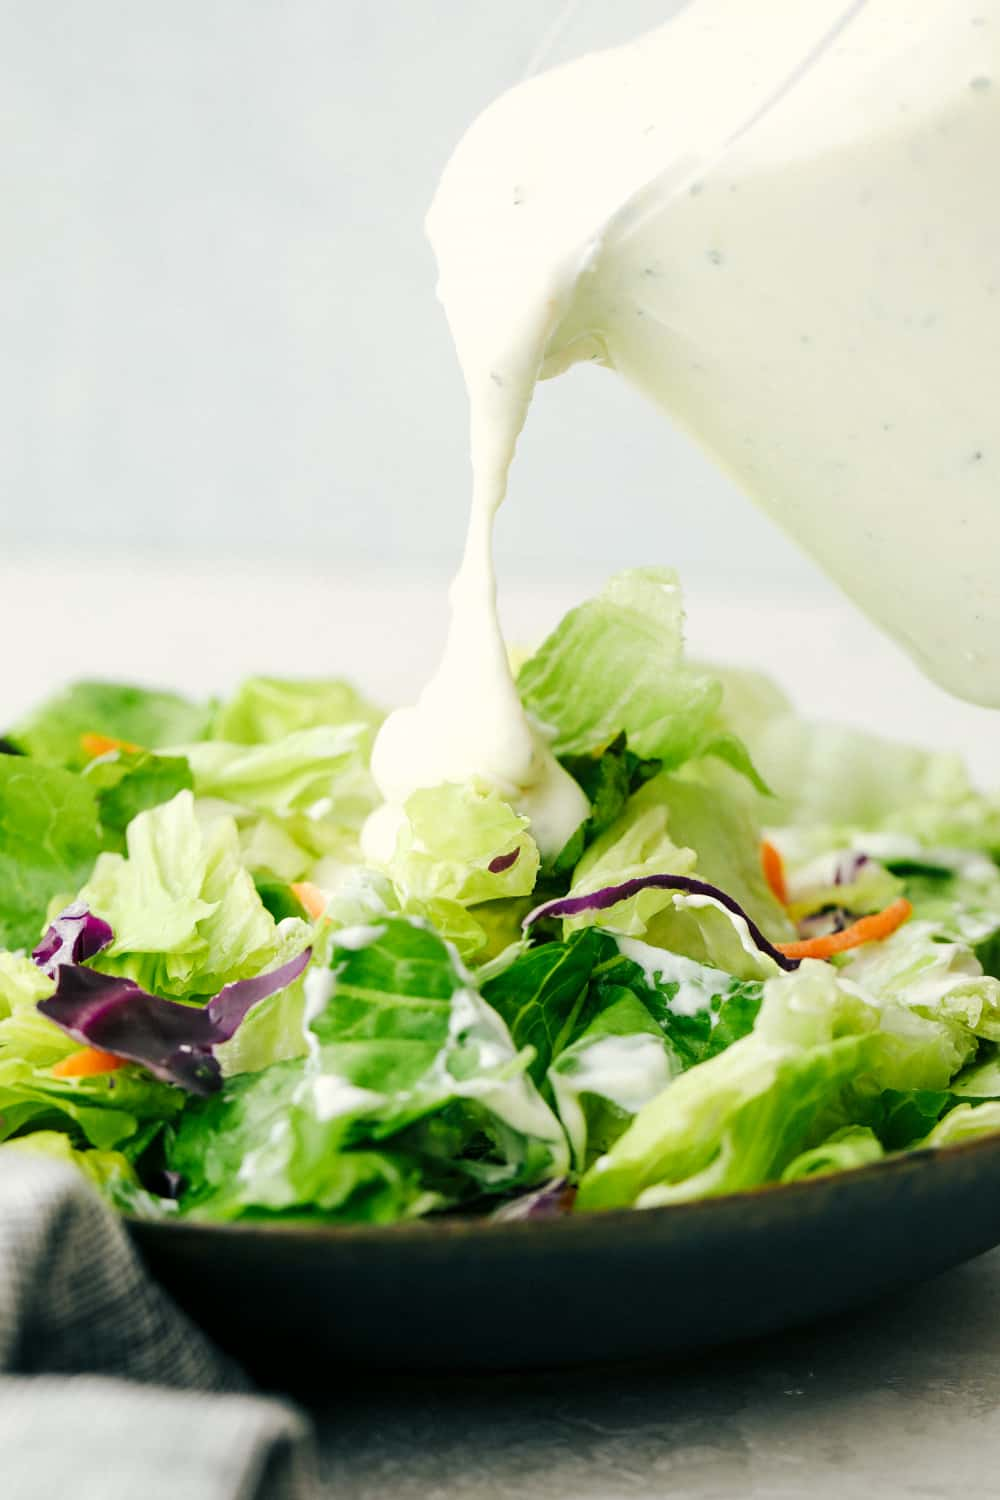 Pouring rich, creamy zesty Homemade Ranch Dressing on Salad.